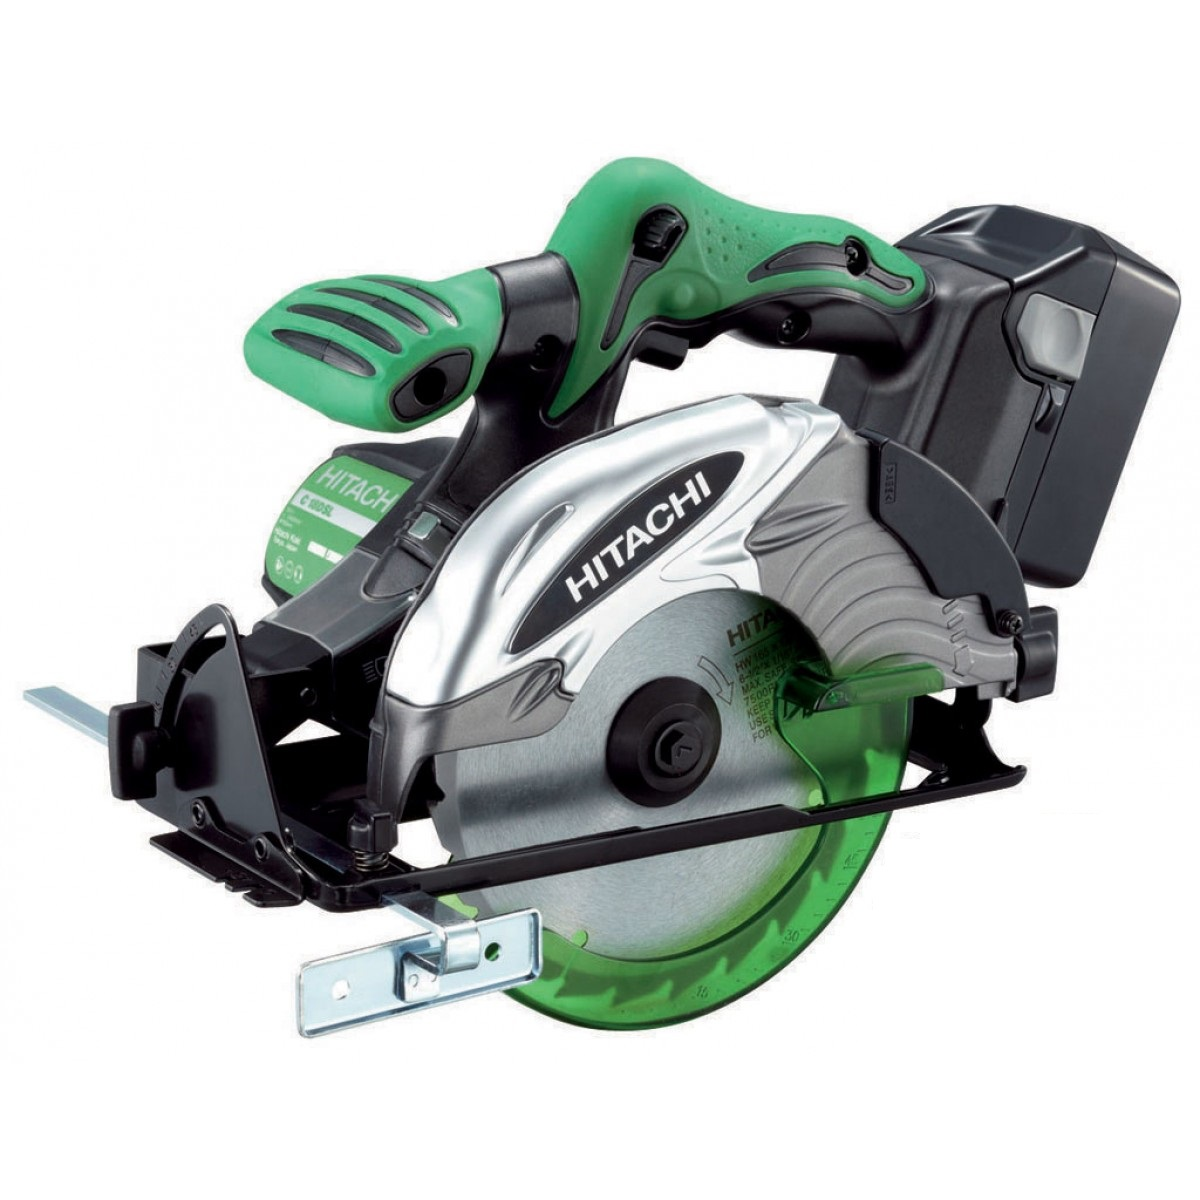 HITACHI C18DSL/JJ 18V CIRCULAR SAW 2X 5.0AH LI-ION BATTERIES